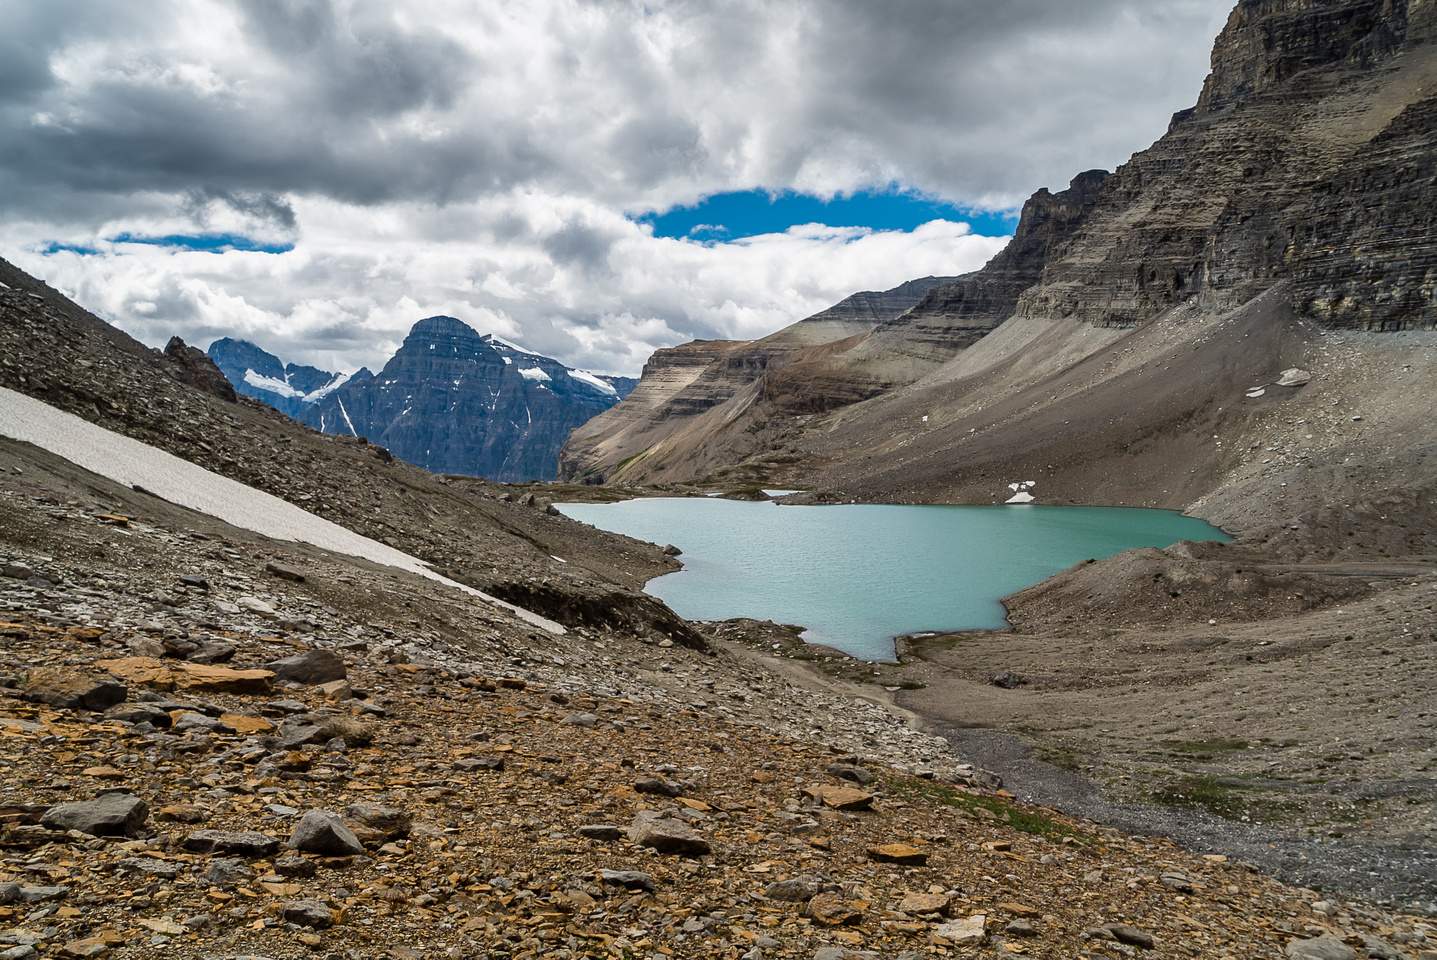 Looking back at the two Upper Totem Lakes.